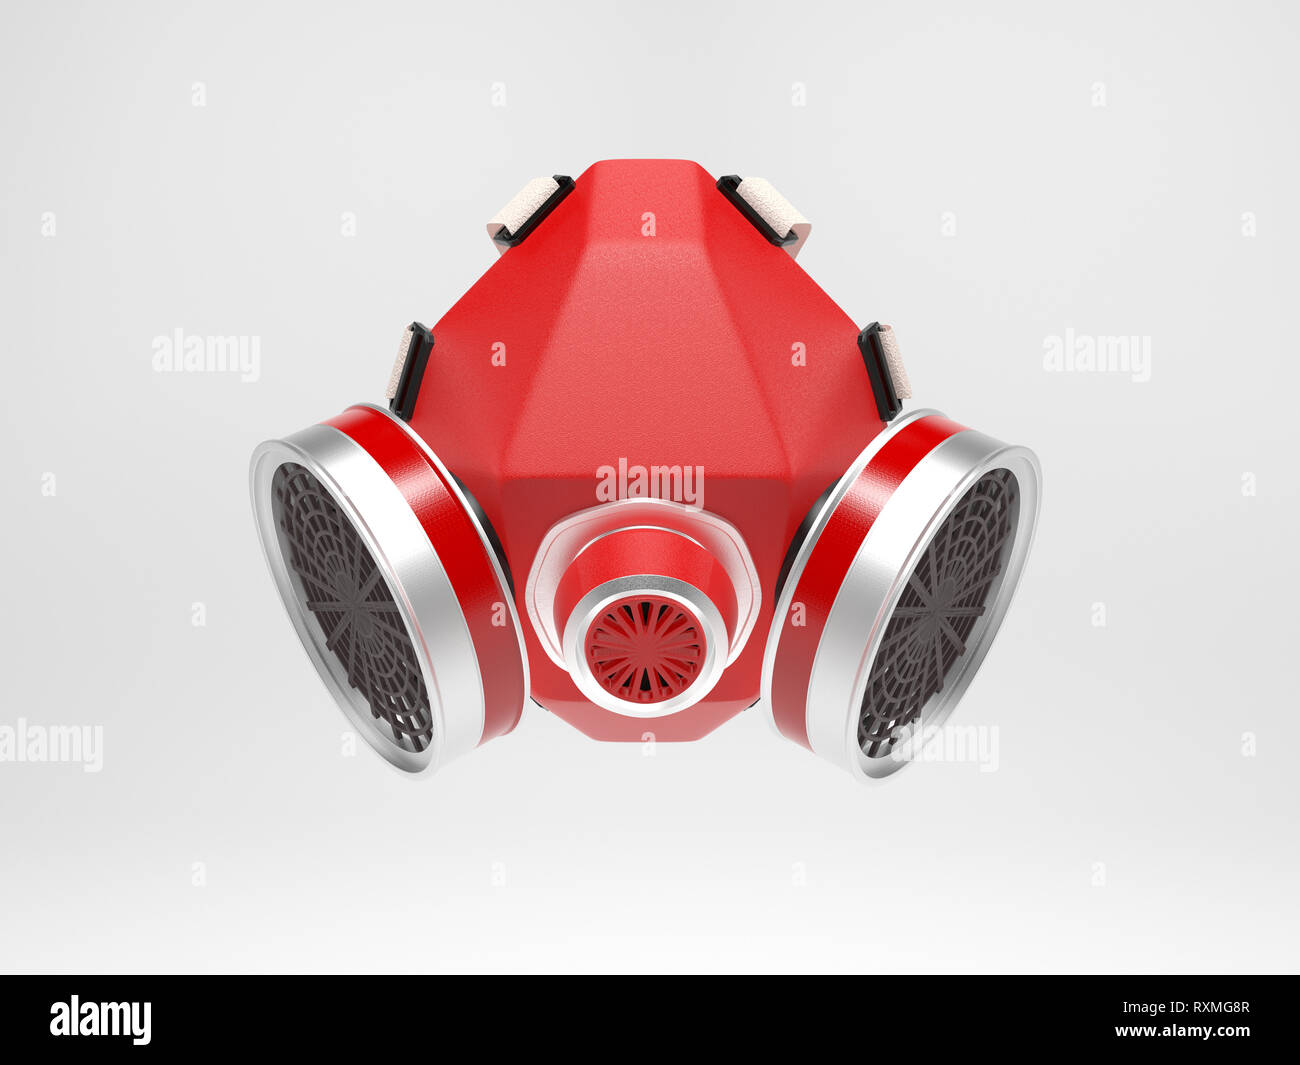 Gas mask. Red respirator. 3d rendering illustration - Stock Image